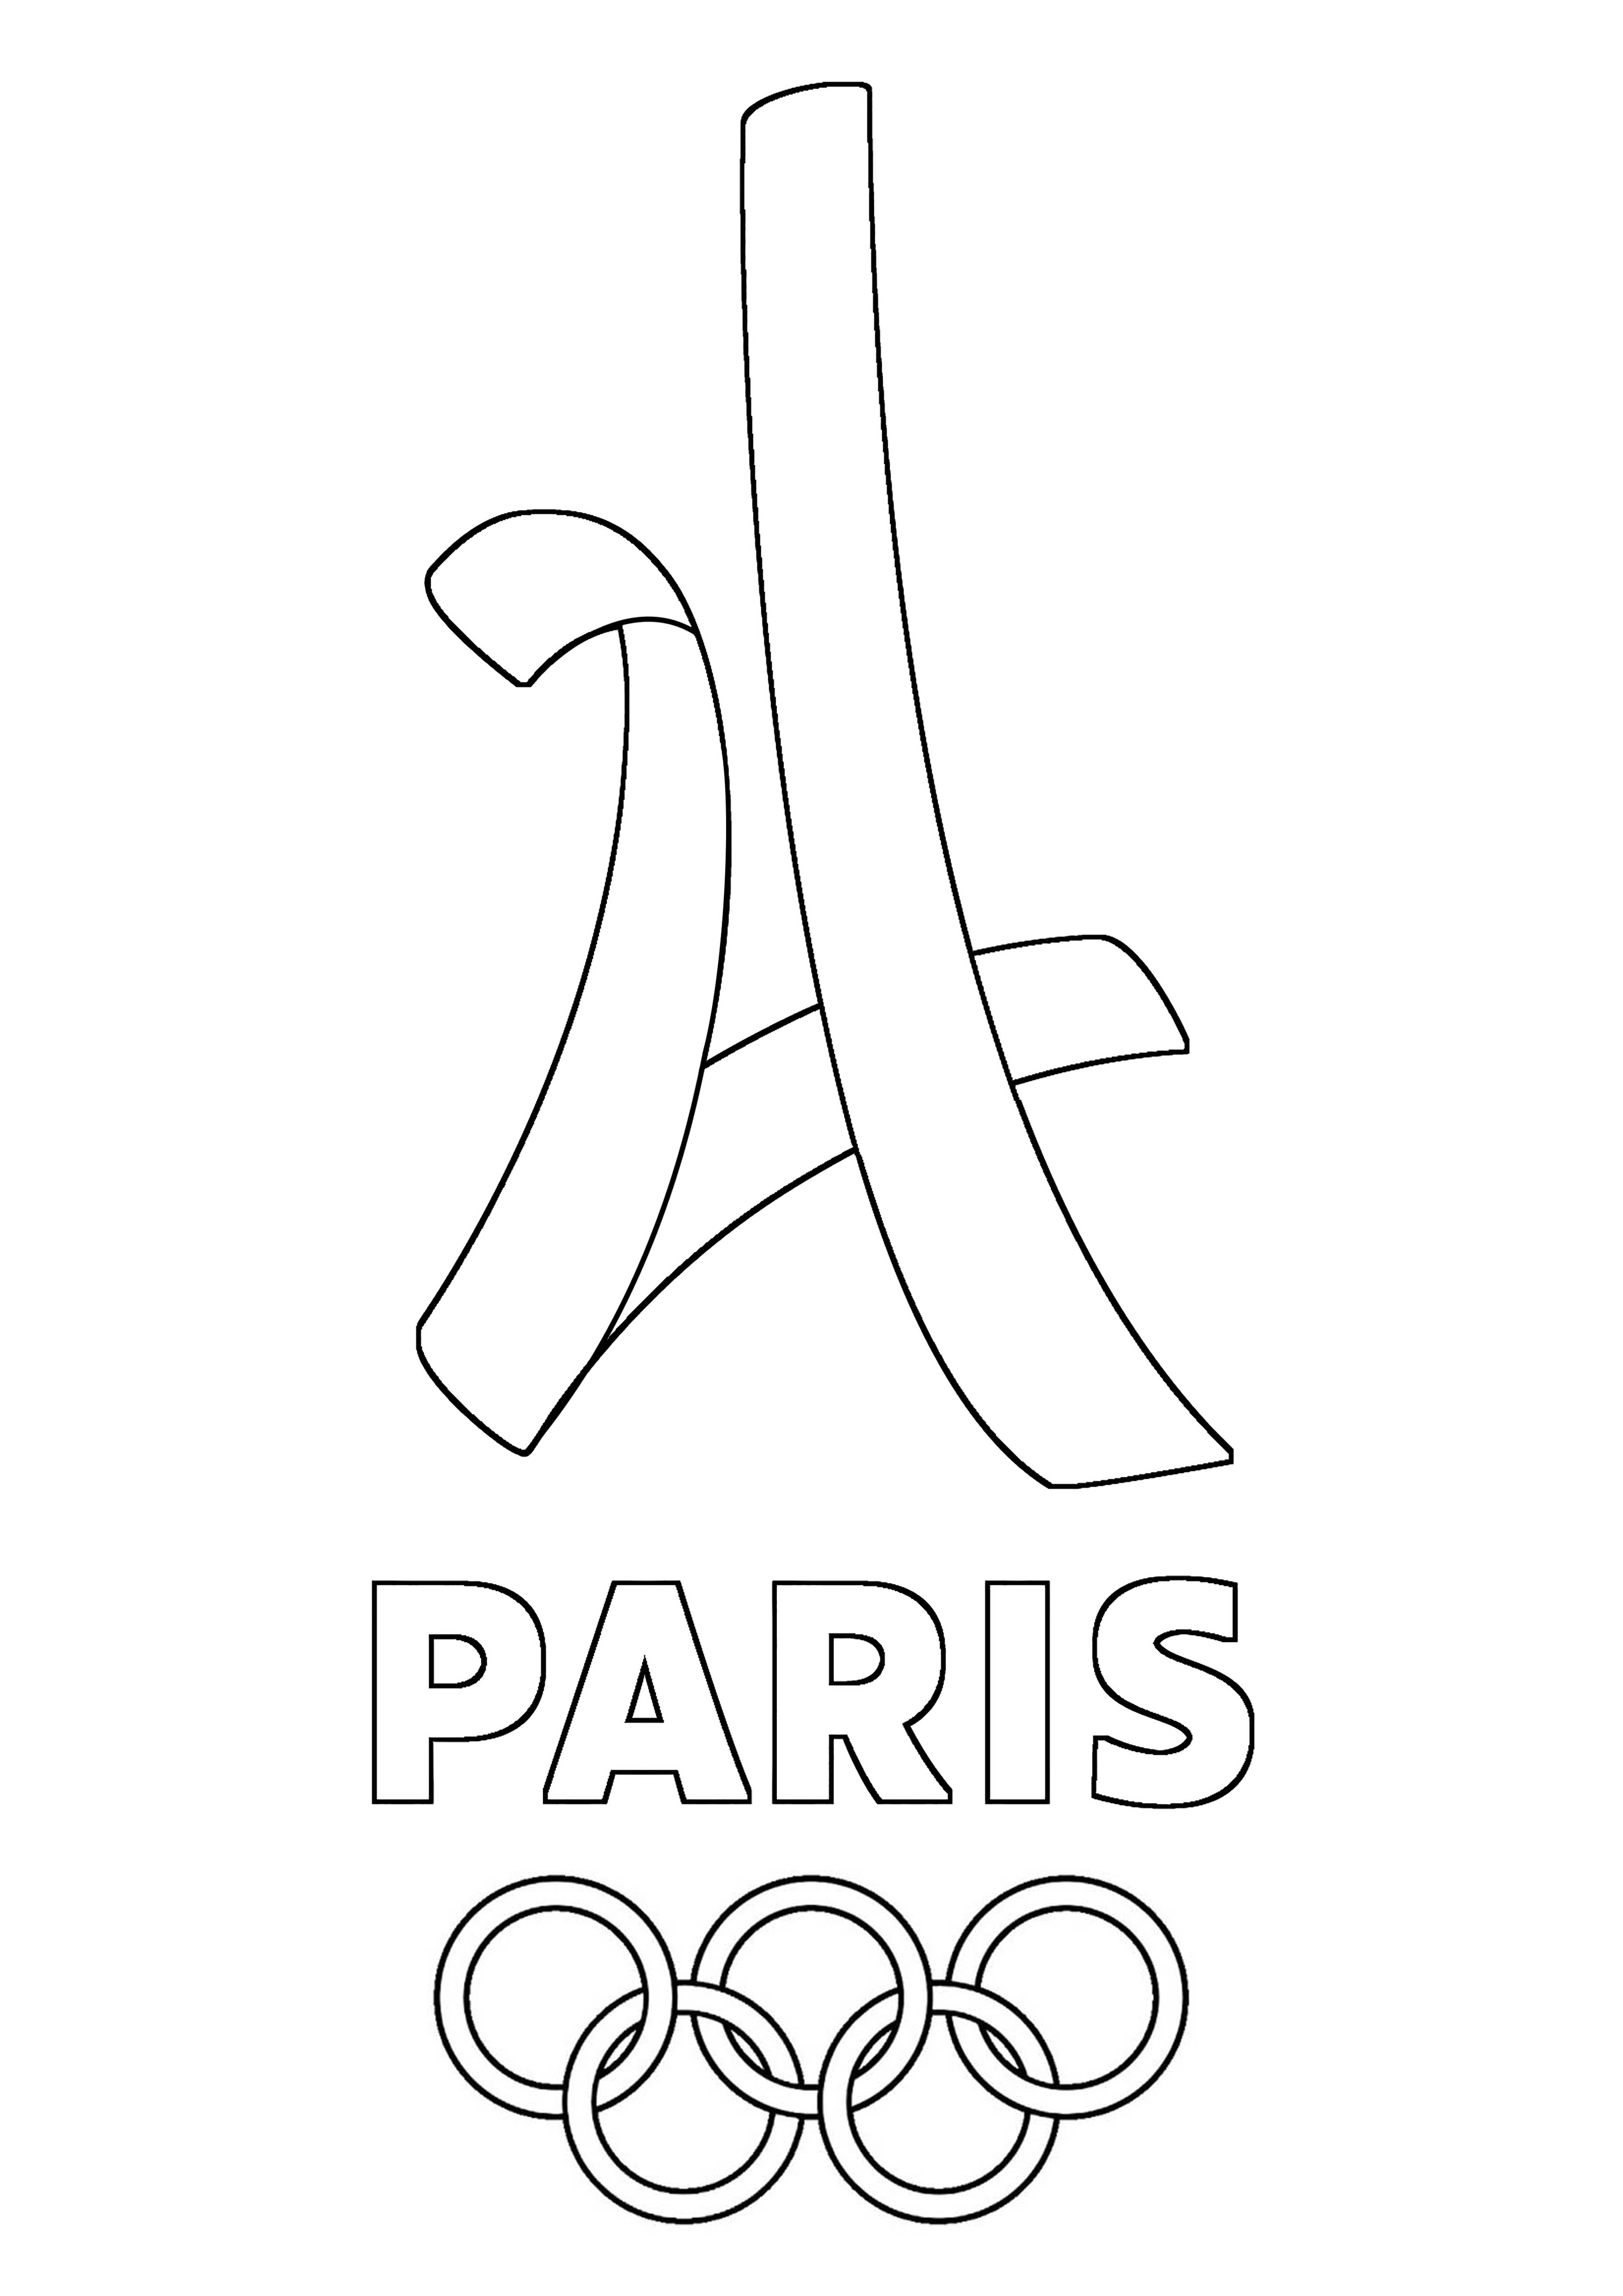 logo paris 2024 olympic games olympic and sport coloring pages